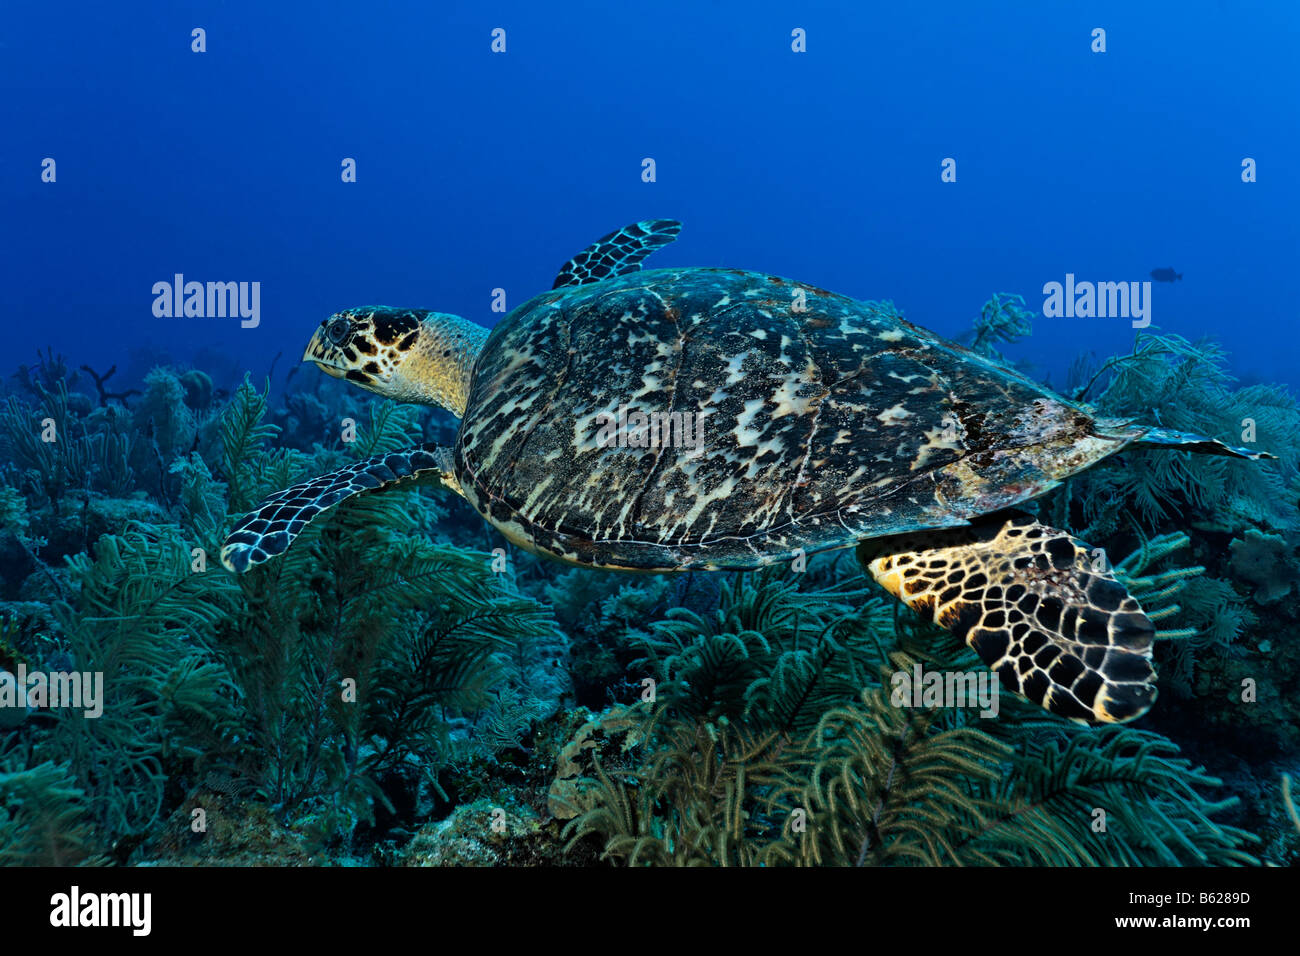 Genuine Hawksbill Turtle (Eretmochelys imbricata) in a coral reef, Turneffe Atoll, Belize, Central America, Caribbean - Stock Image